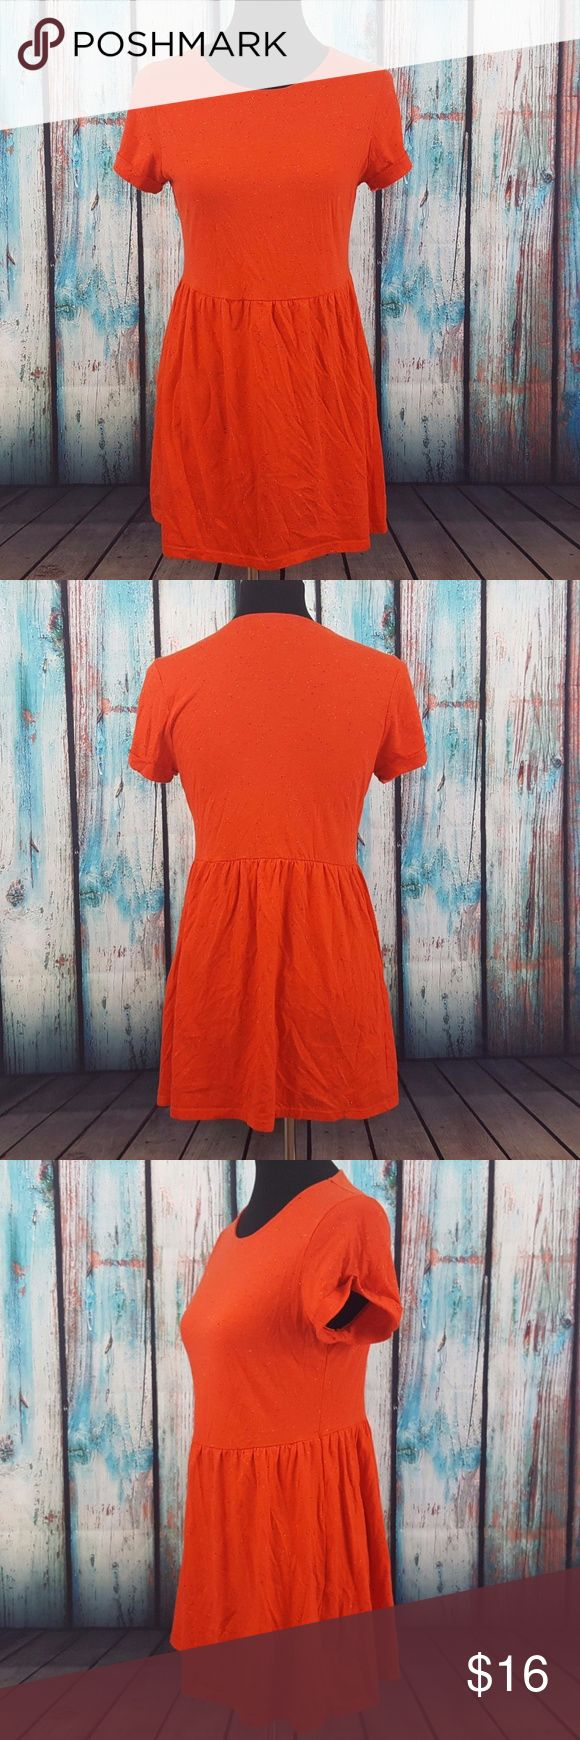 "TopShop Petite Baby Doll Dress/Tunic TopShop Petite orange short sleeve baby doll style dress orc tunic. Size 6 (US). In excellent pre-owned condition, no flaws!  Measurements Size: US 6, EUR 38, UK 10 Length: 29.5""  25 R785 Topshop PETITE Dresses Mini"